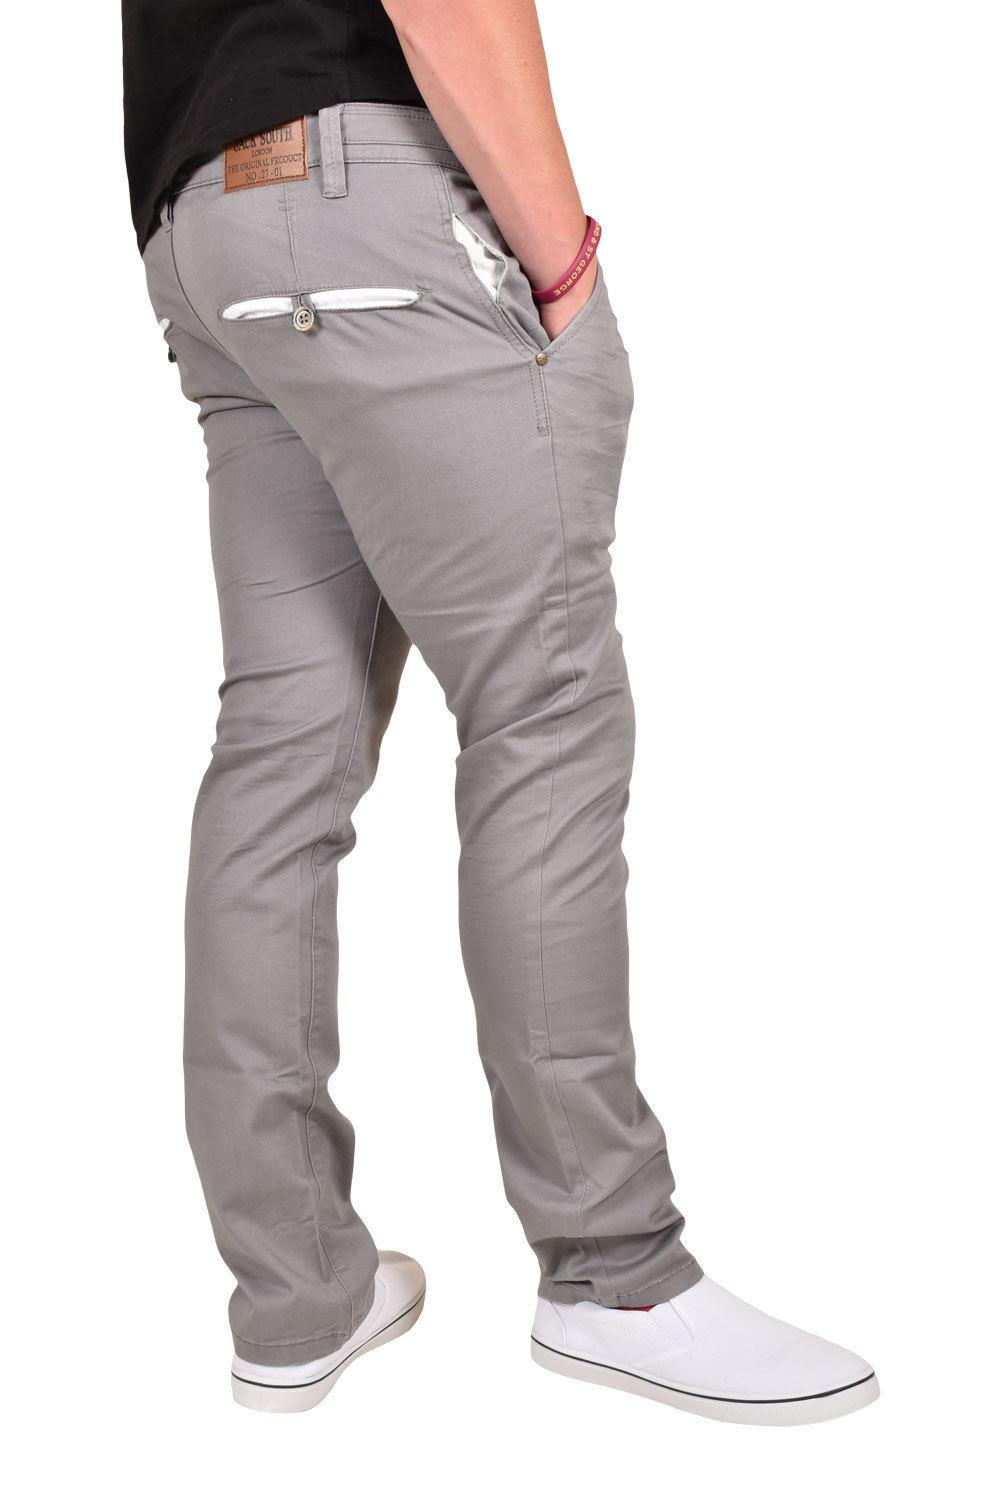 New-Mens-Designer-Jacksouth-Chino-Regular-Fit-Stretch-Cotton-Rich-Twill-Trousers thumbnail 15